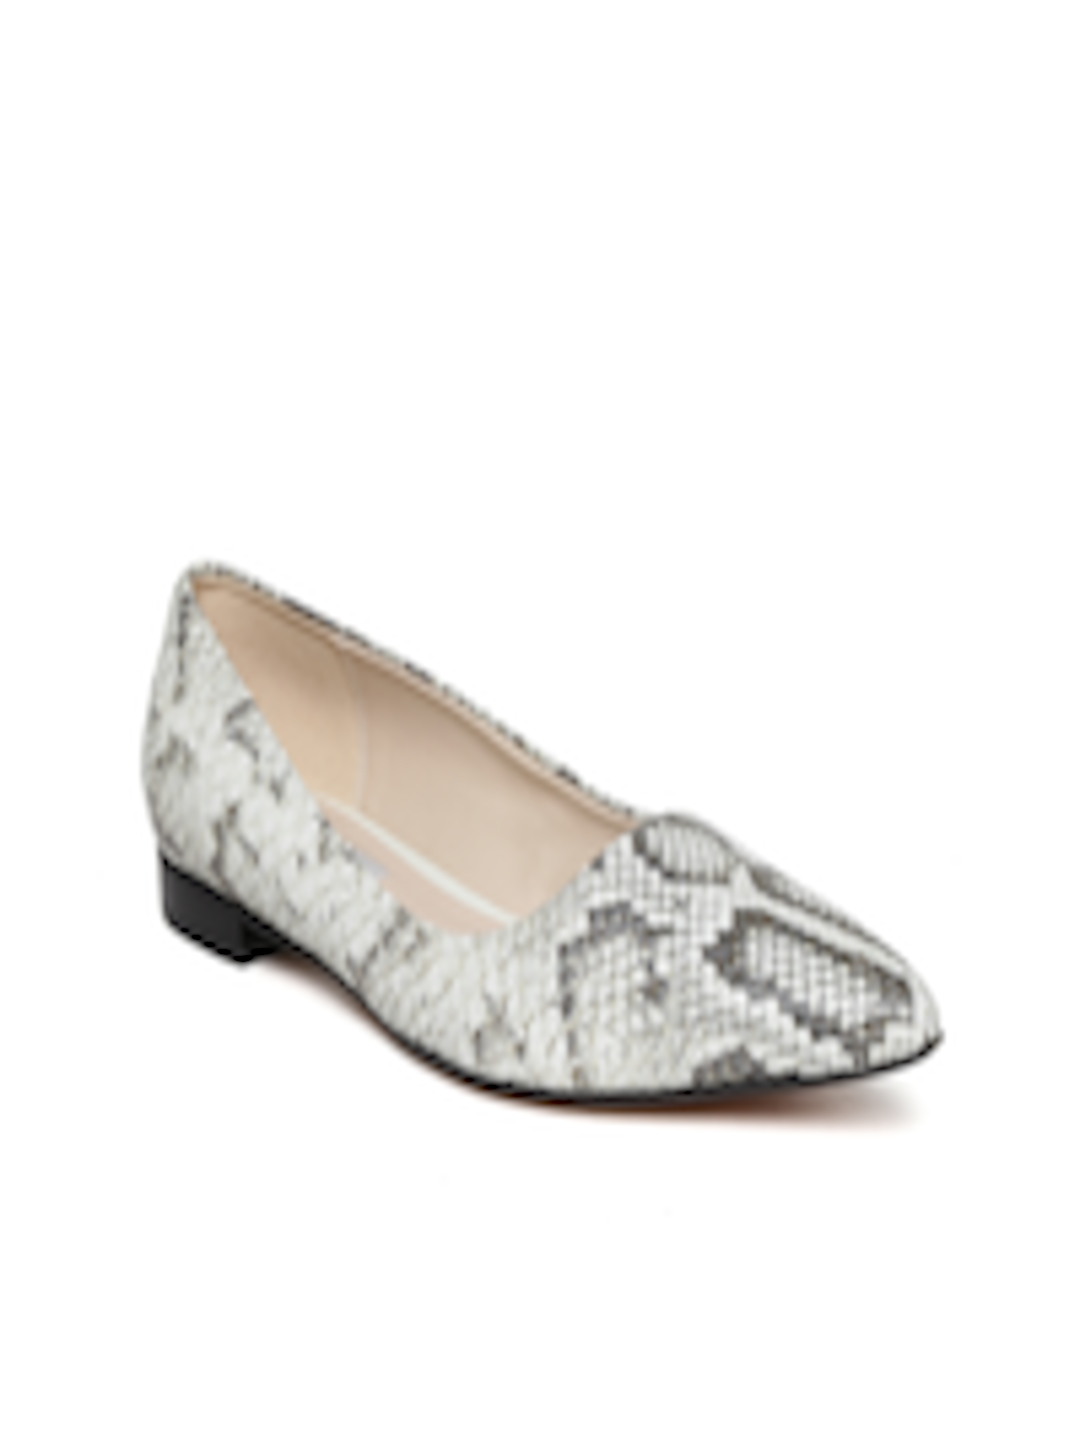 11e30b00e0c Buy Clarks Women Off White   Grey Snakeskin Print Leather Flat Shoes - Flats  for Women 1120448